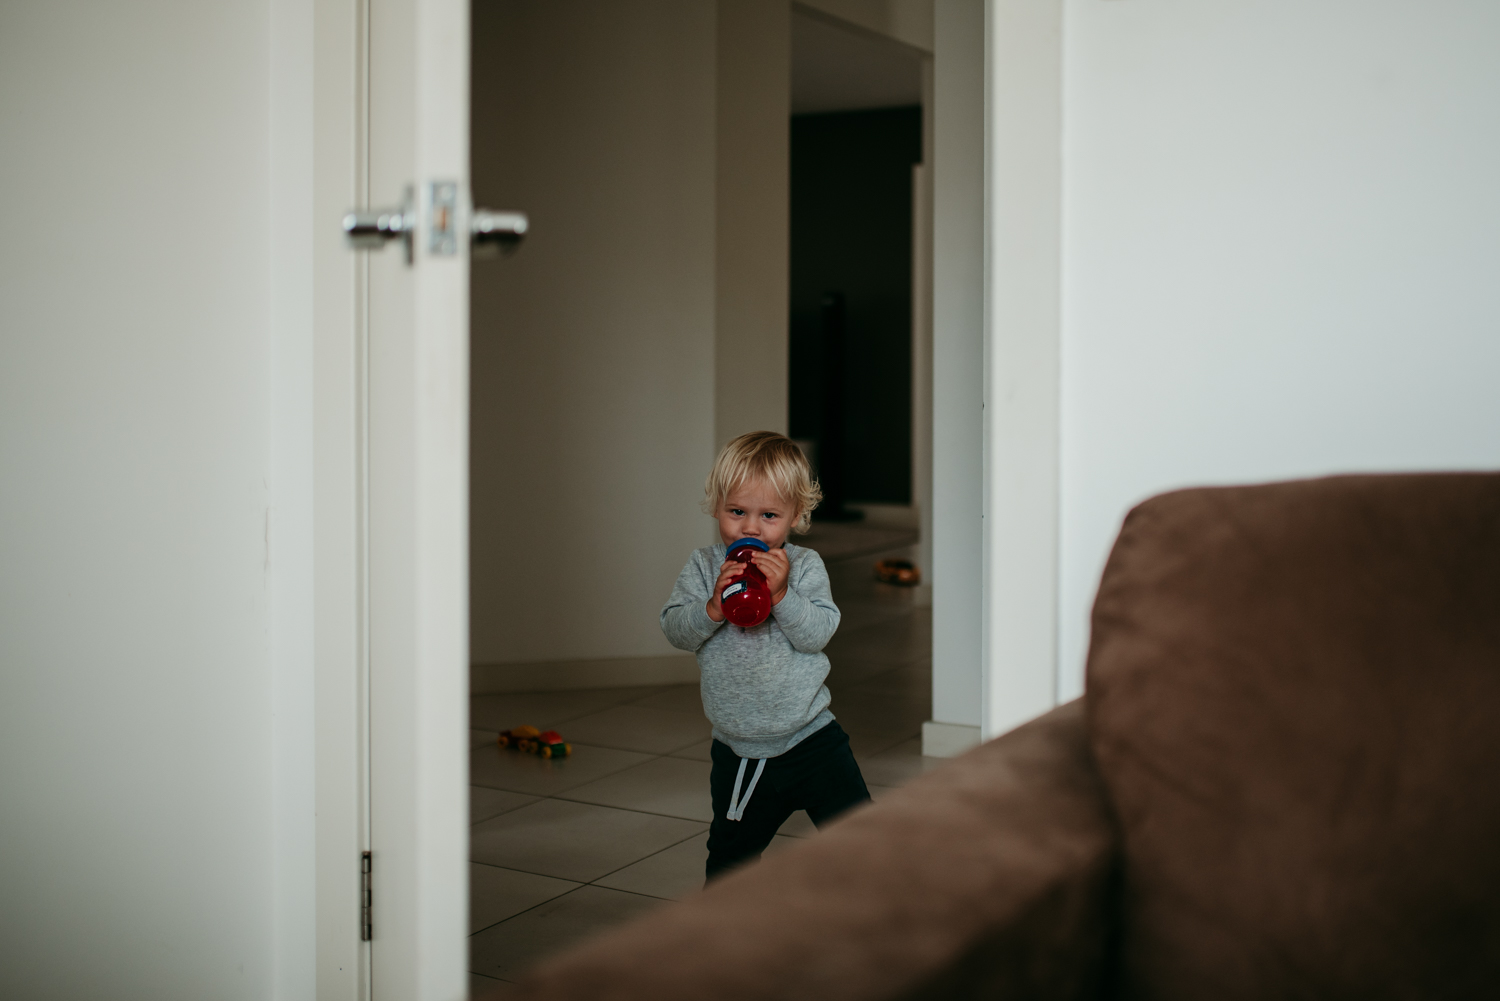 In this image, I love how the negative space either side of the doorframe leads the eye right to my cheeky monkey. I even love the scattered toys in the image... Because that's what life with kids is like!